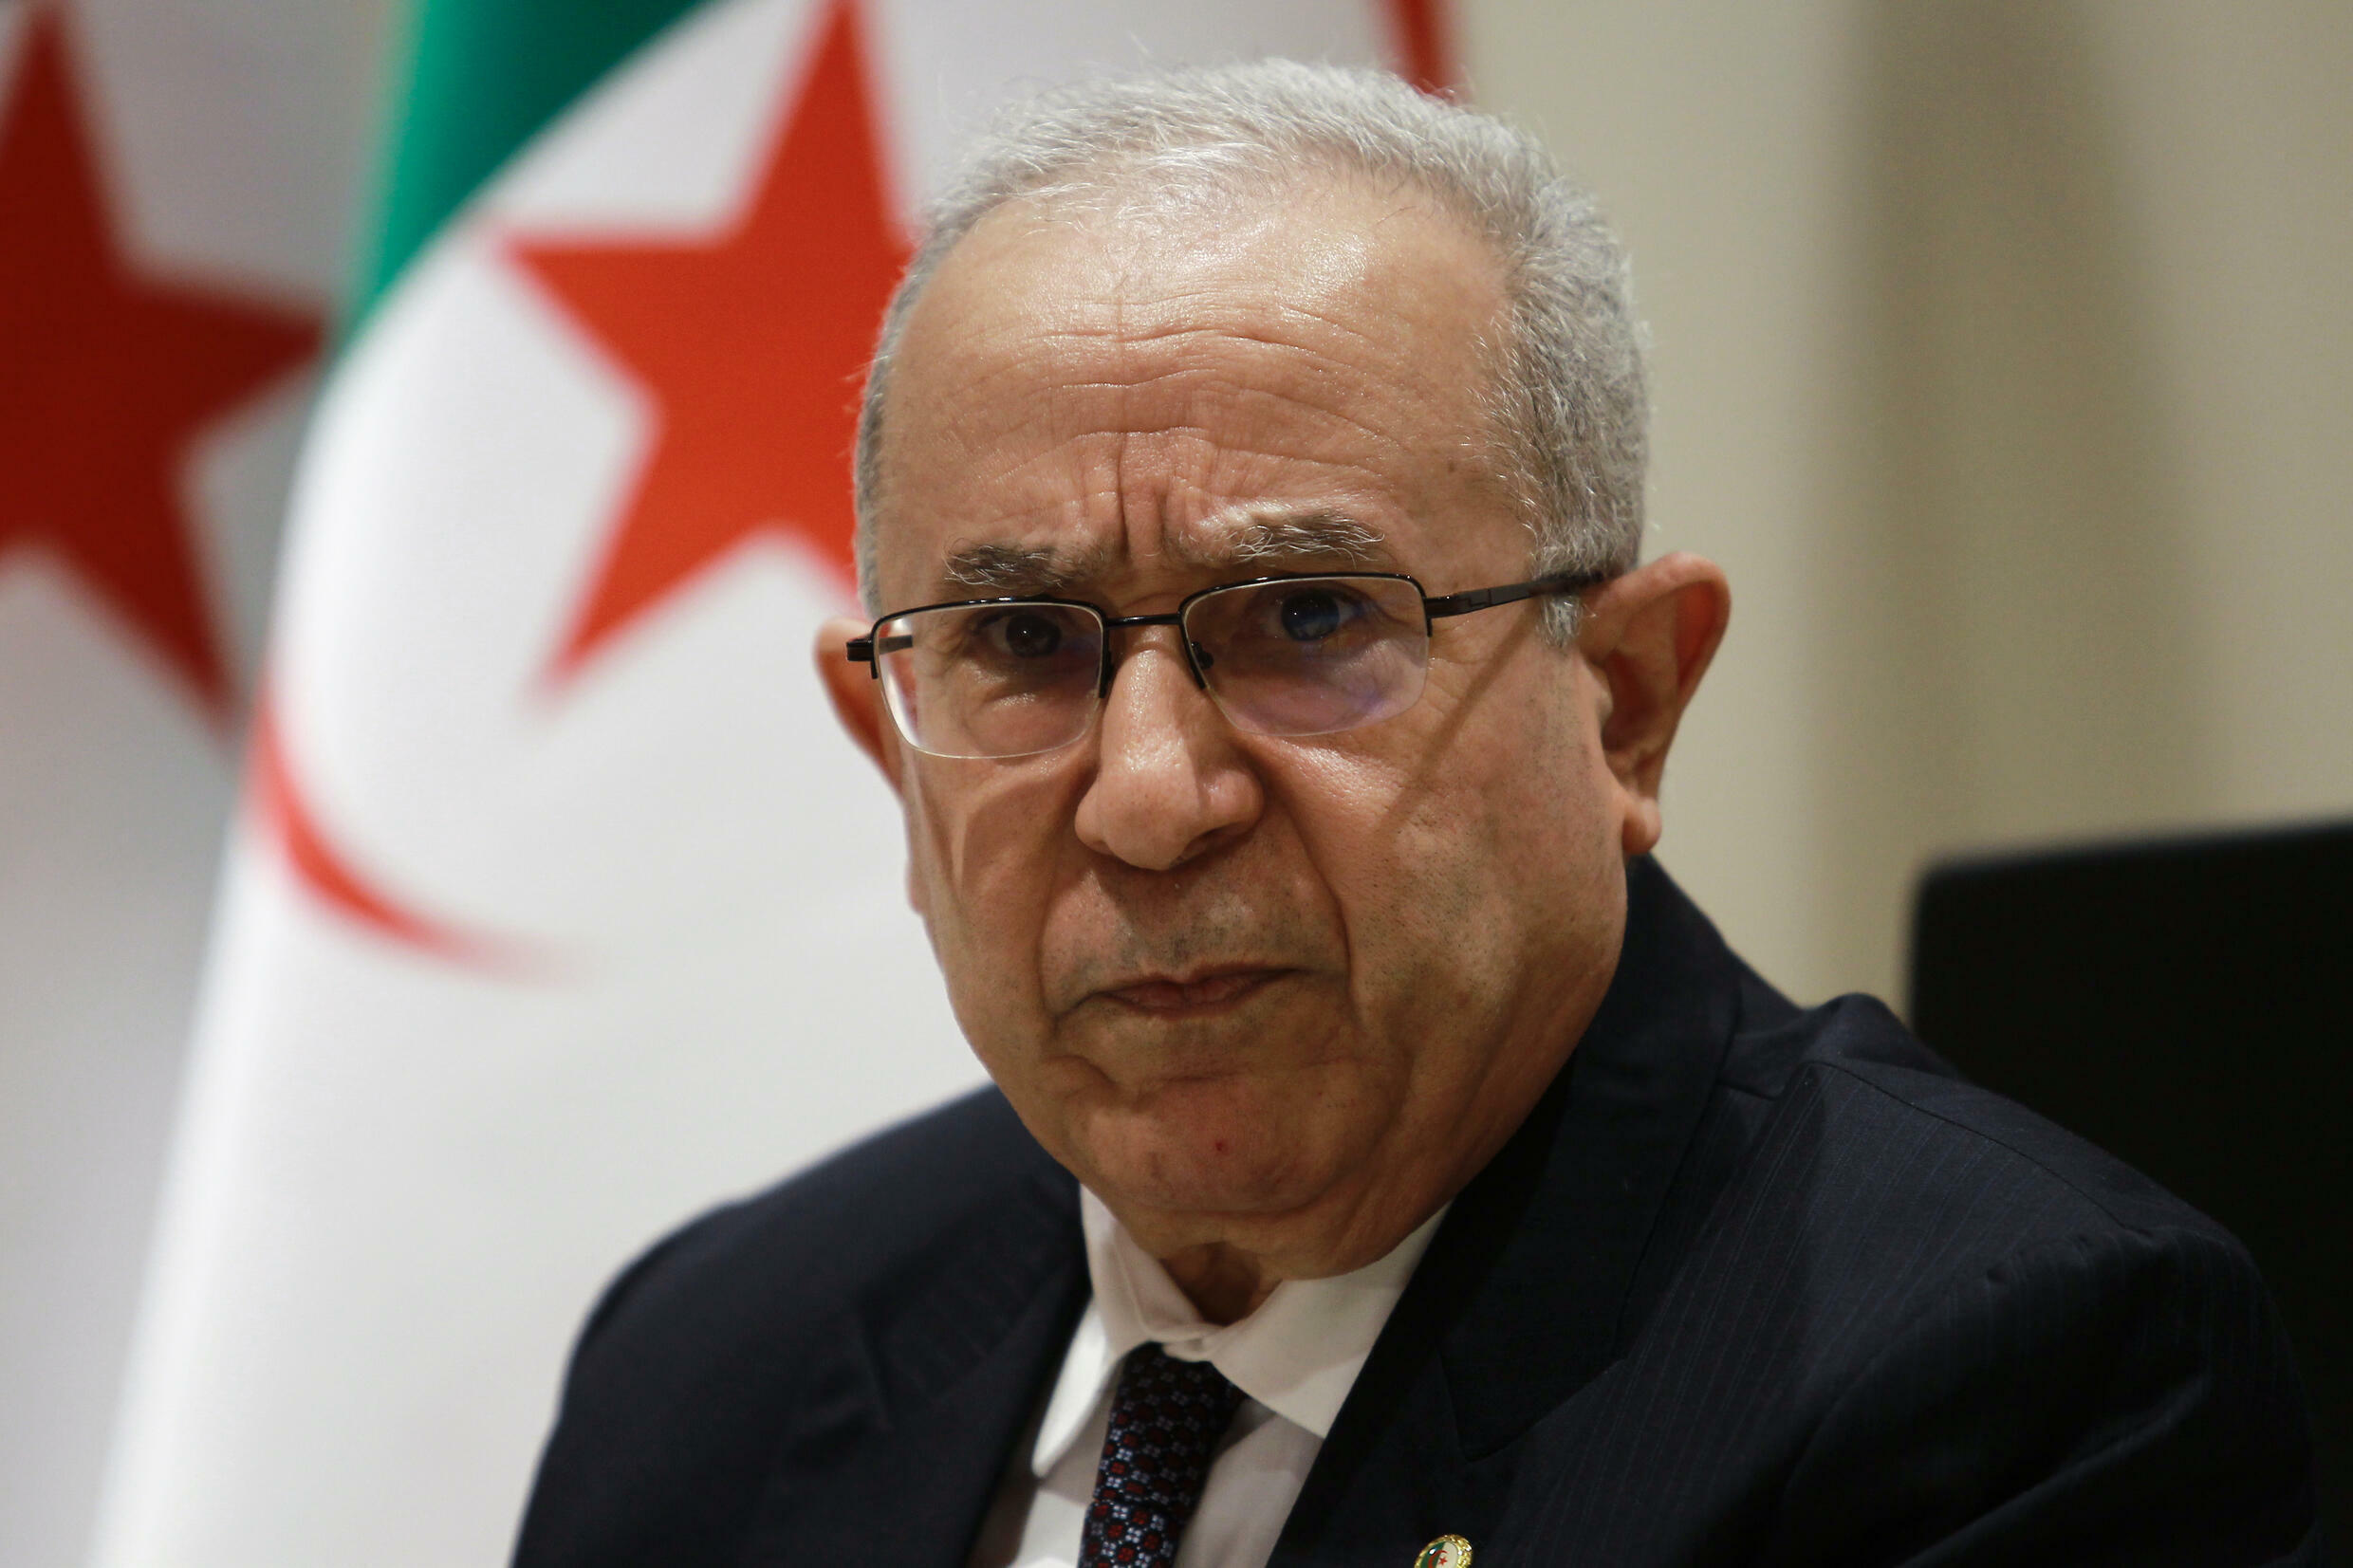 Algeria's Foreign Minister Ramtane Lamamra holds a press conference in the capital Algiers, on August 24, 2021